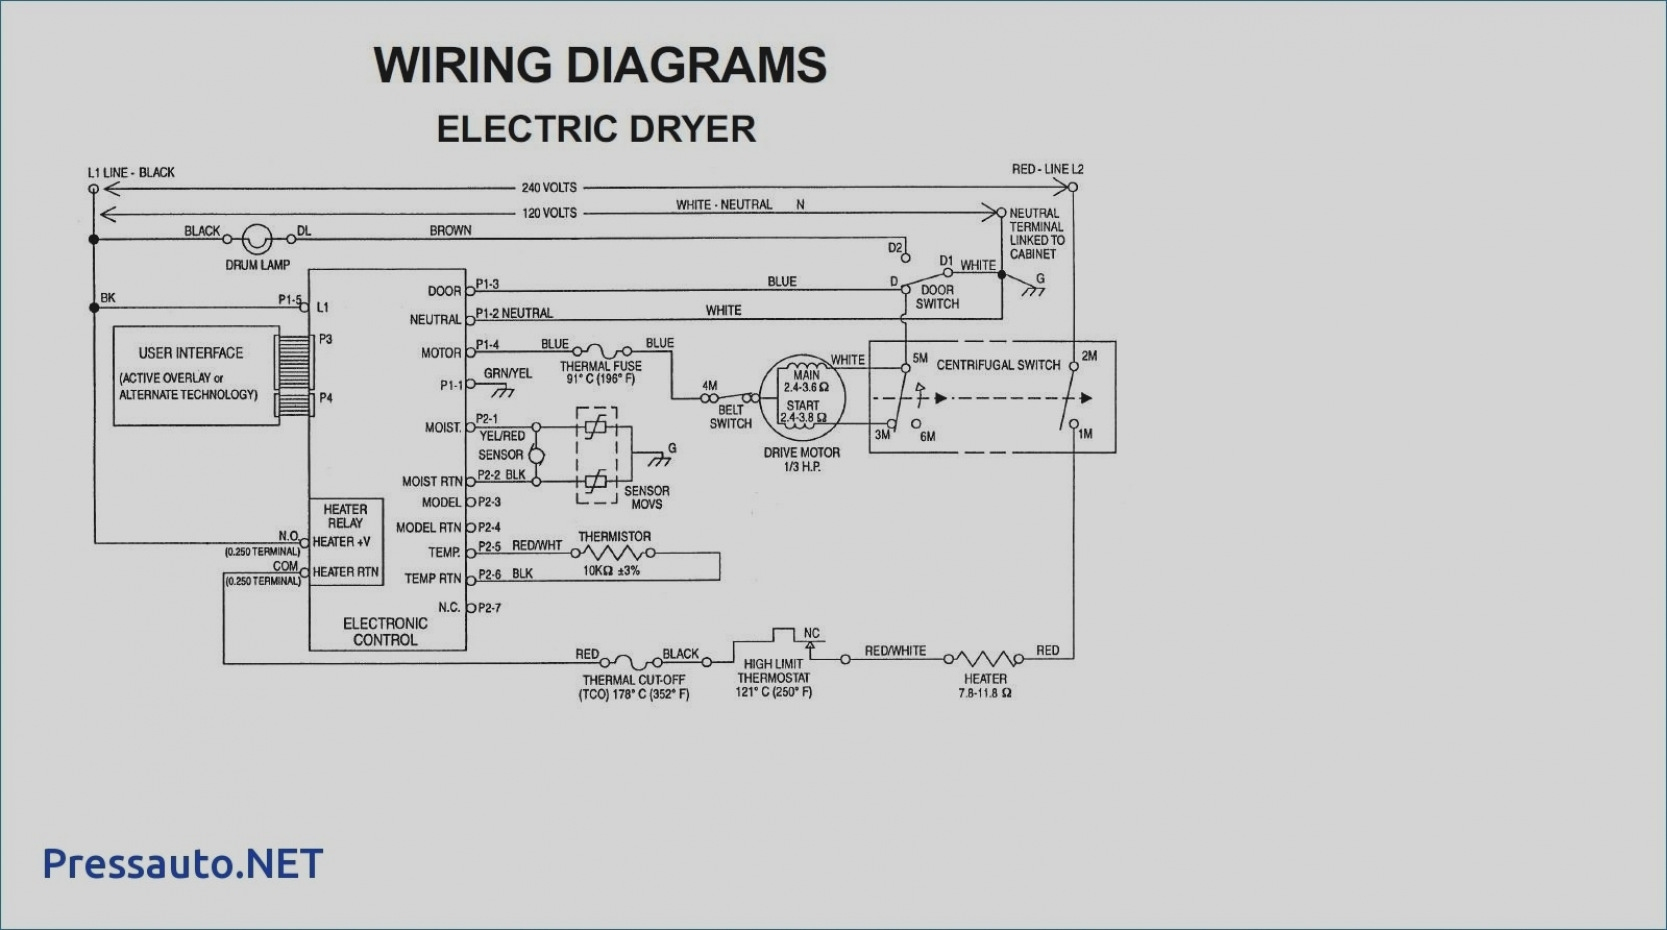 whirlpool electric dryer wiring diagram Collection-Full Size of Wiring Diagram Whirlpool Estate Dryer Wiring Diagram Awesome Great Whirlpool Dryer Wiring 4-p